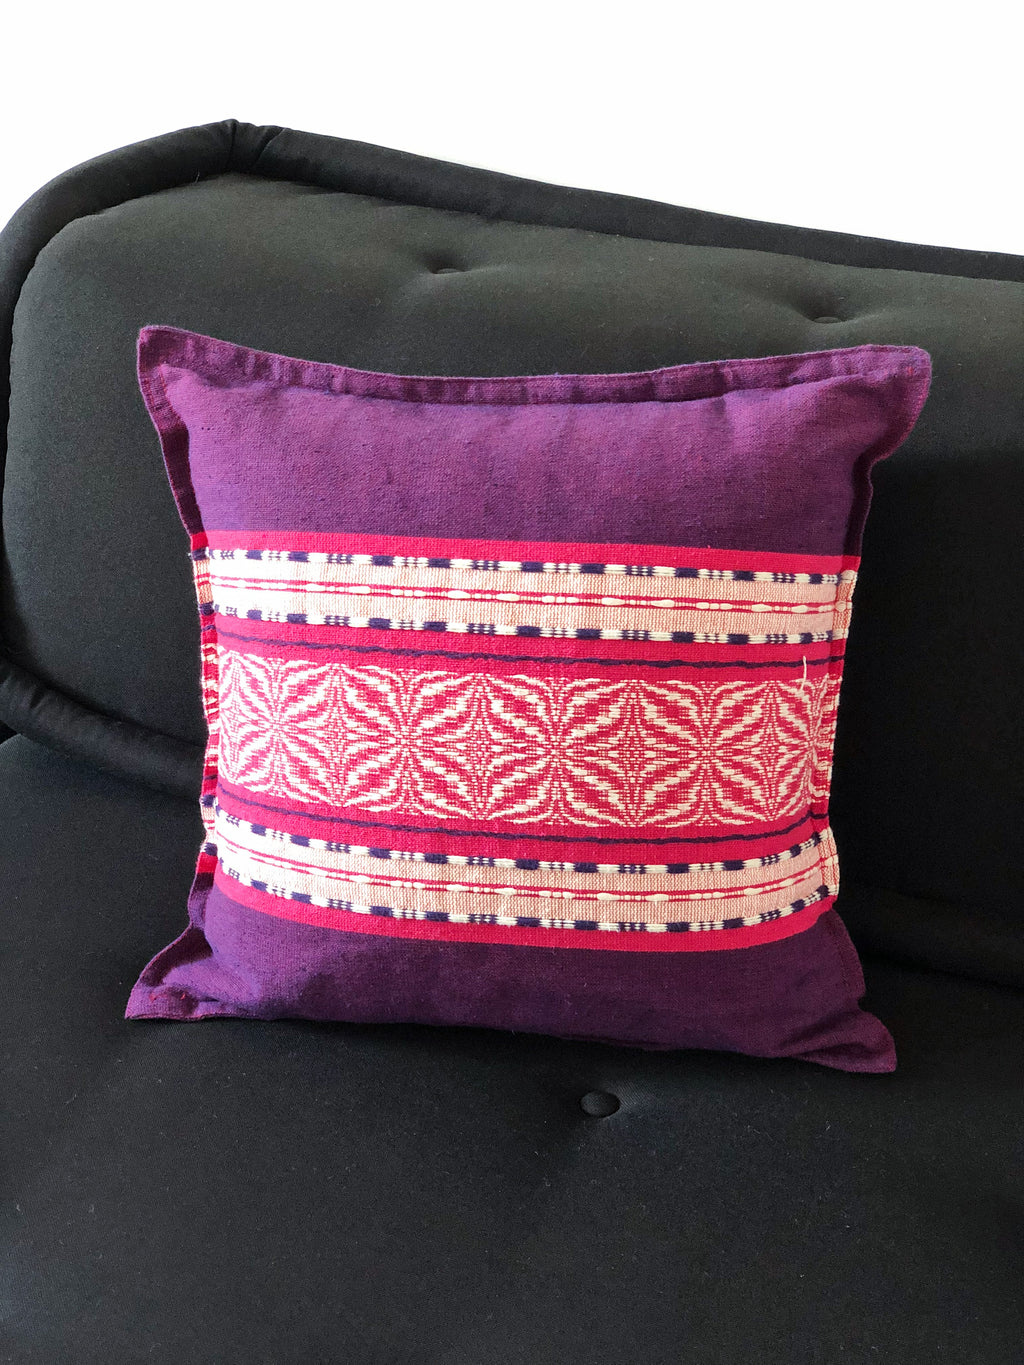 The pink flower cushion cover